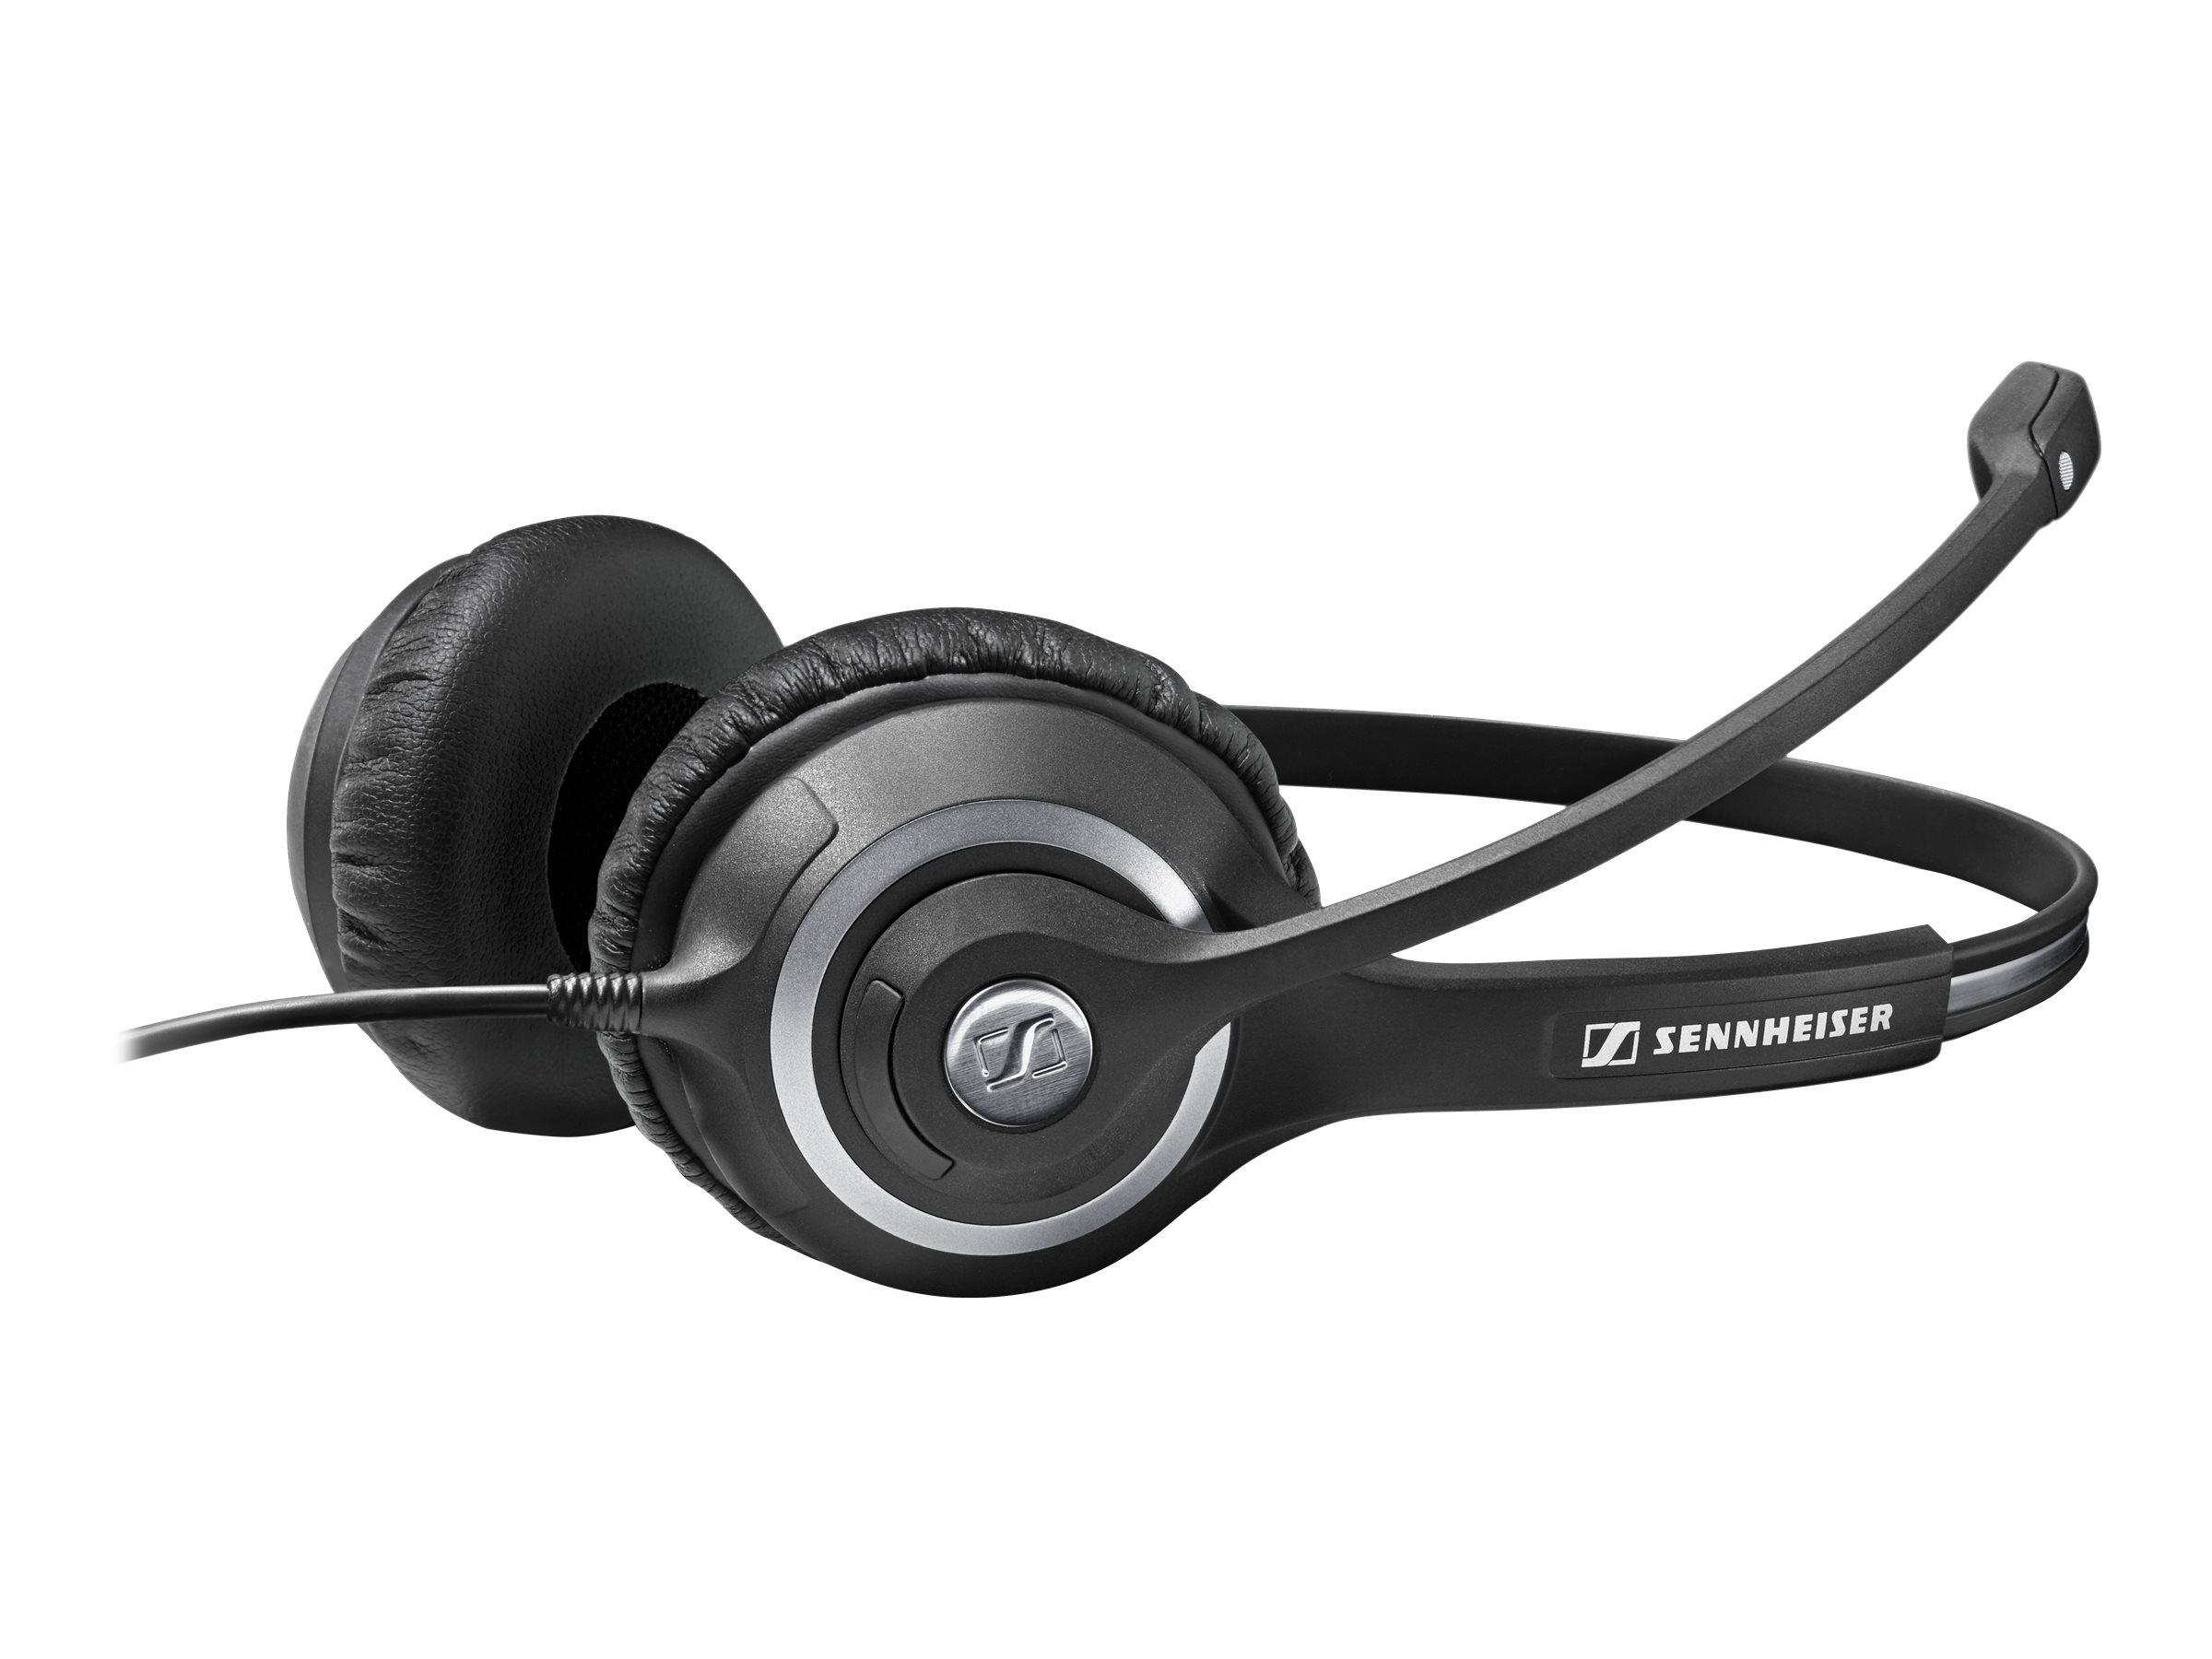 Sennheiser Circle SC 260 MS II - Headset - on-ear - wired - active noise canceling - black